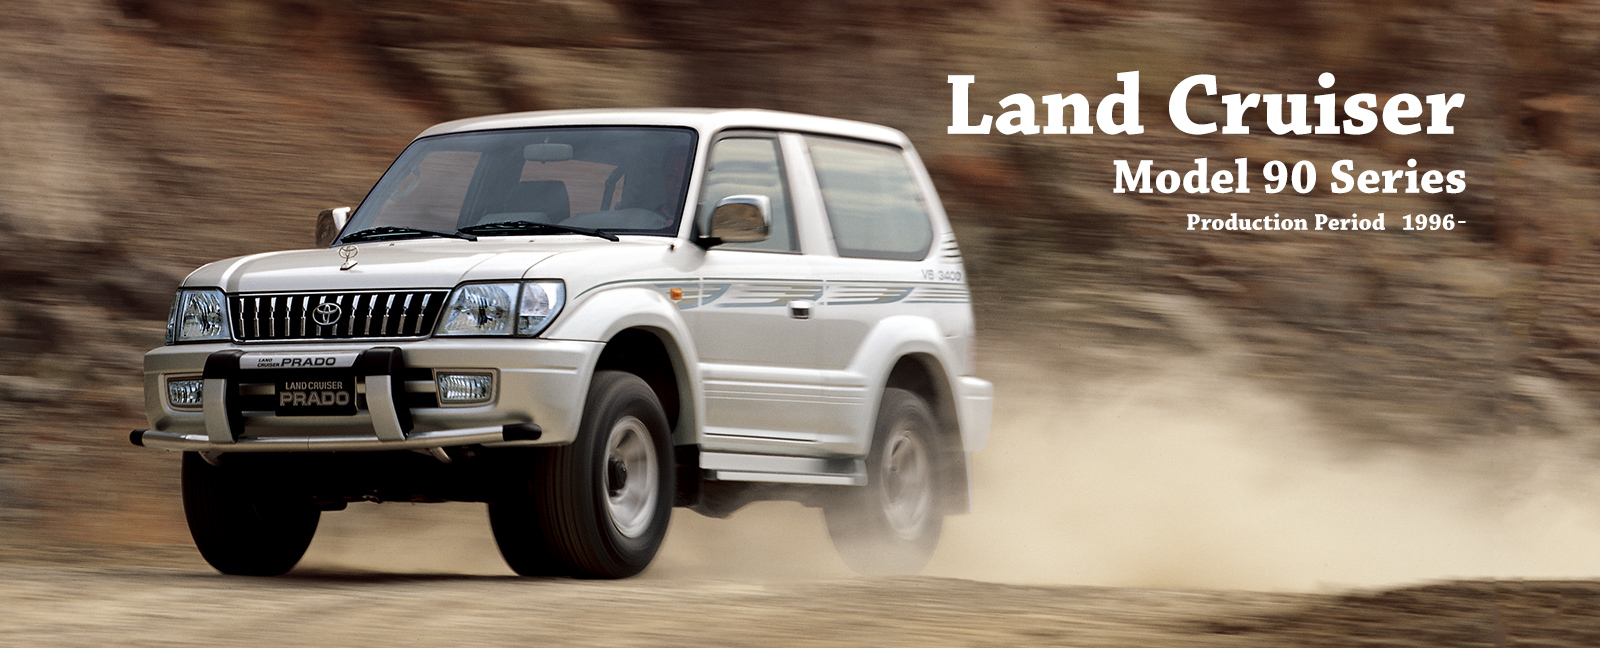 Toyota Global Site | Land Cruiser | Model 90 Series_01